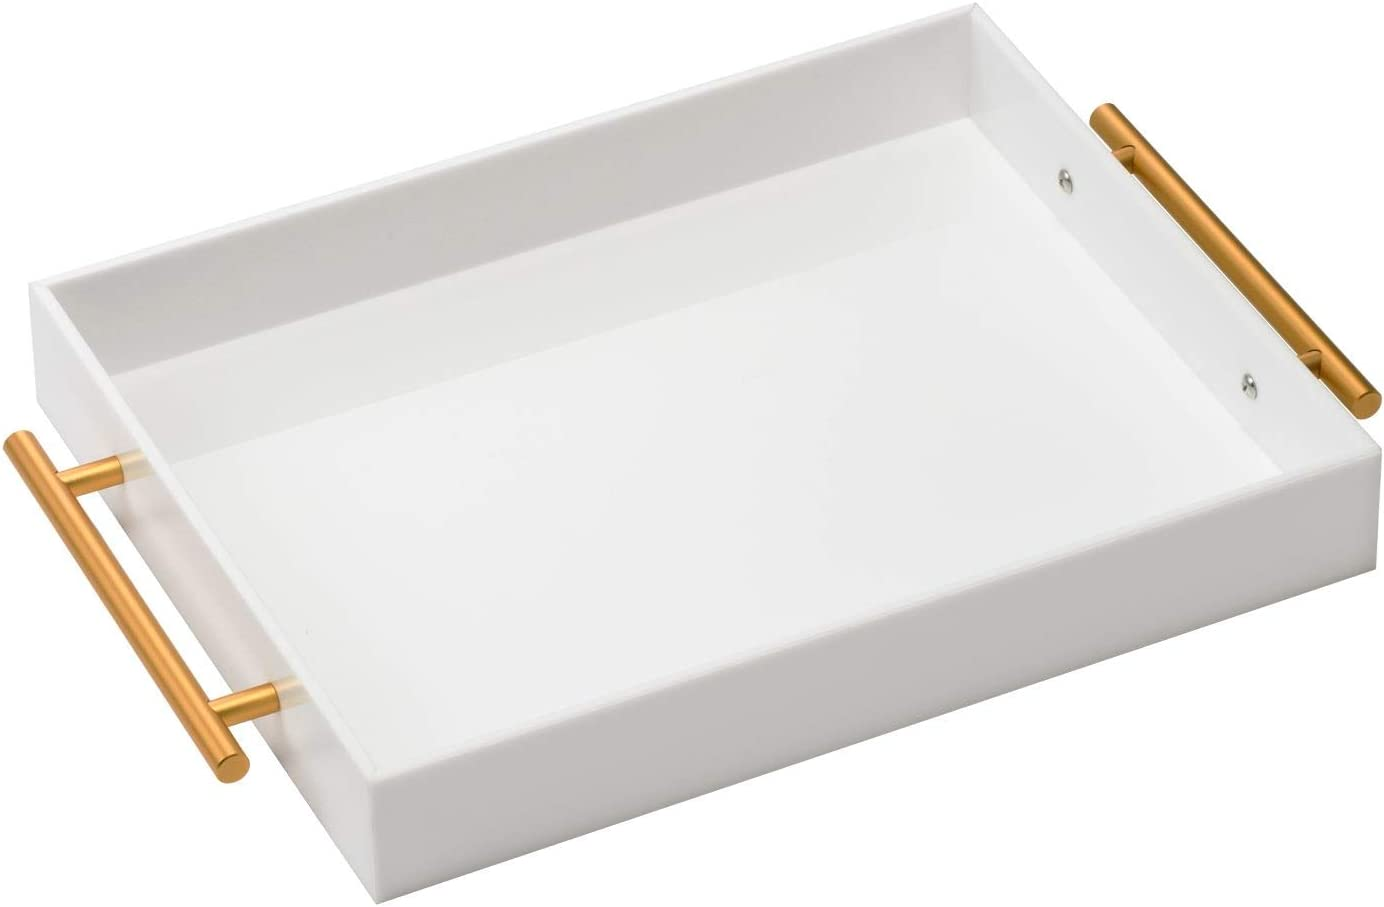 White Acrylic Lucite Serving Tray with Metal Handles,11x14 Inch,Decorative Storage Organizer with Spill-Proof Design,Serving for Coffee,Breakfast,Dinner and More